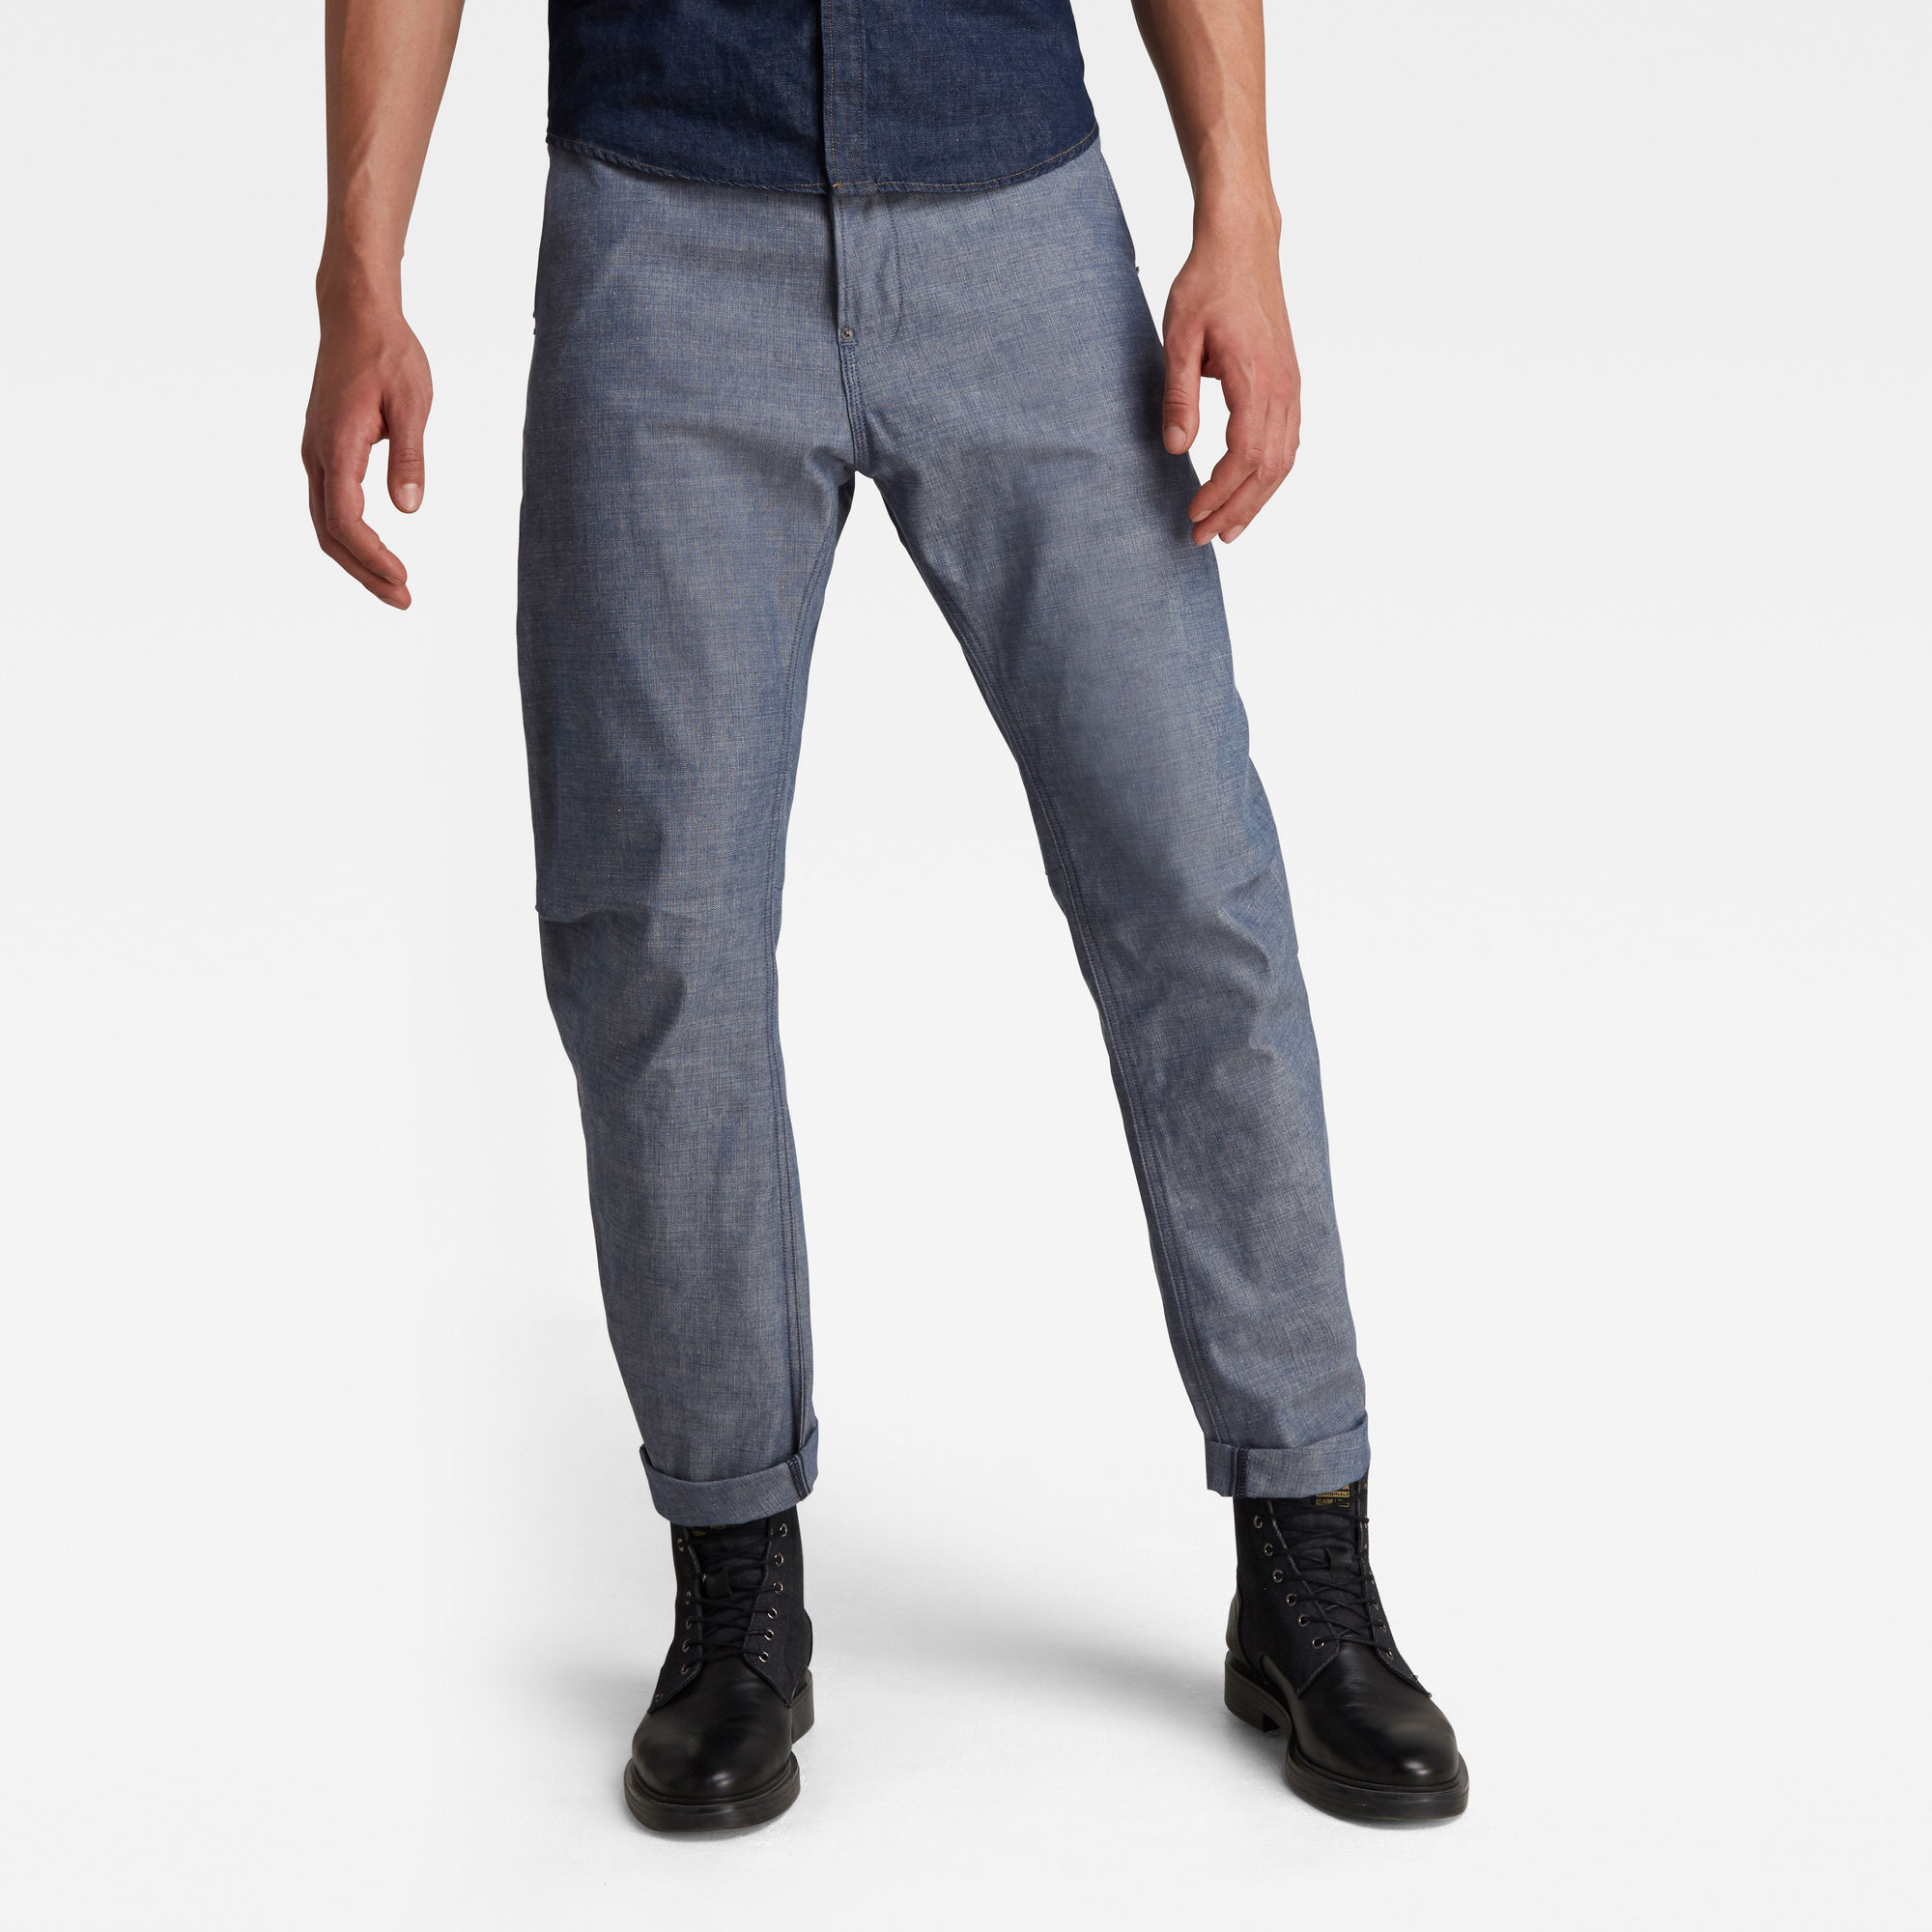 G-Star RAW Heren GSRR Grip 3D Relaxed Tapered Jeans Donkerblauw